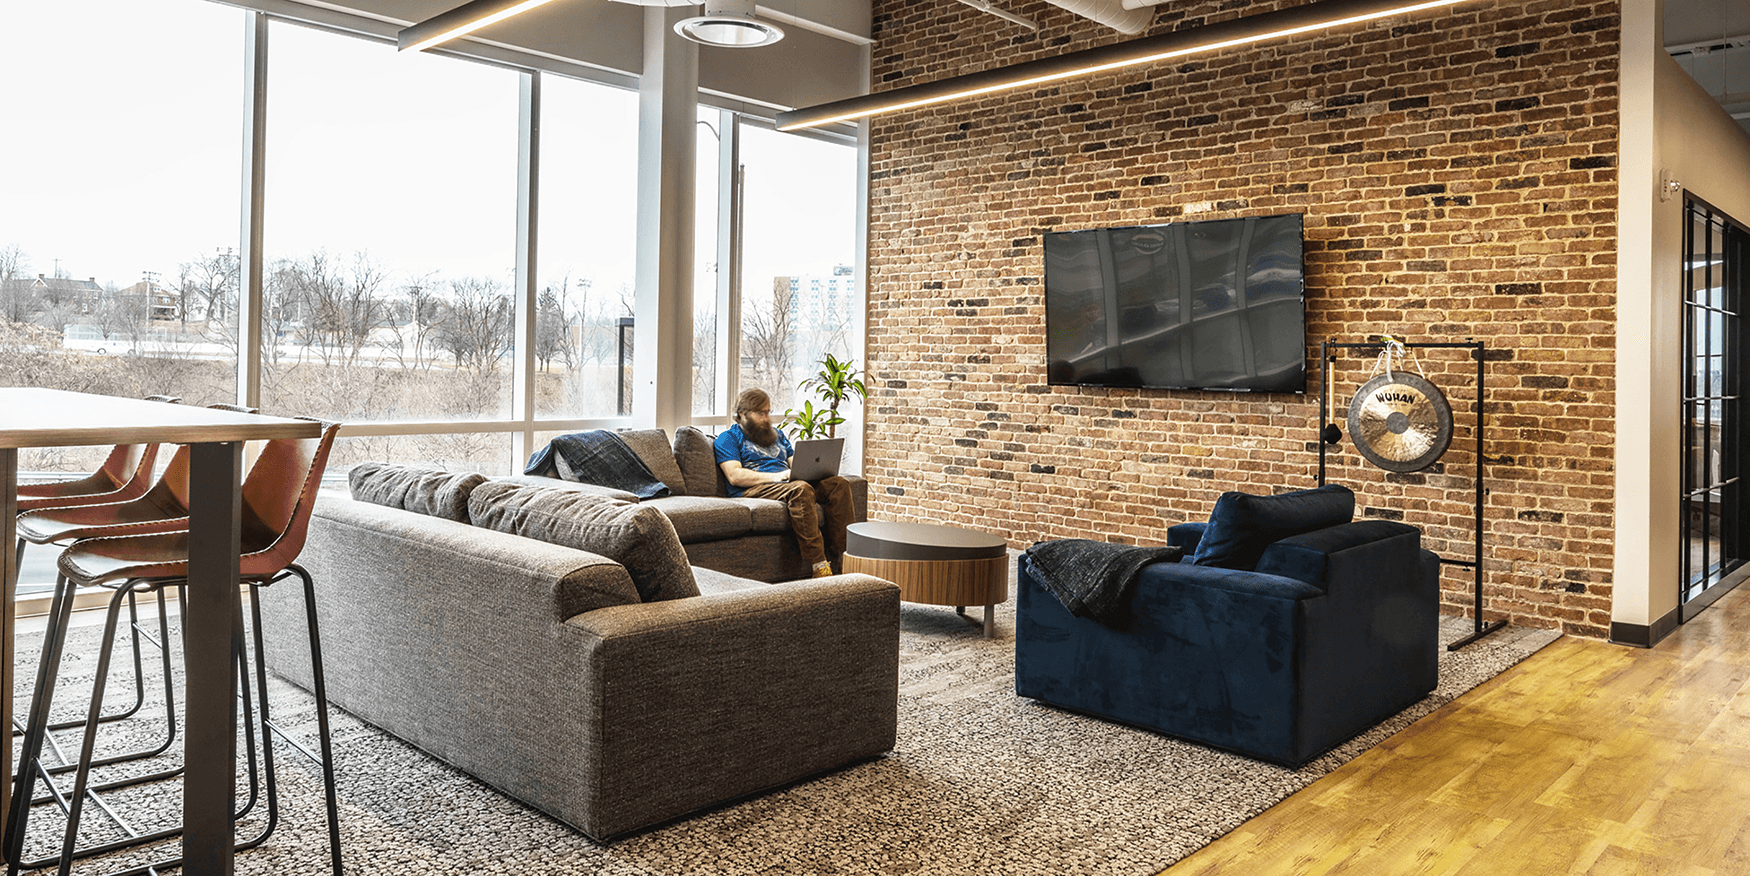 collaborative workspace with three couches